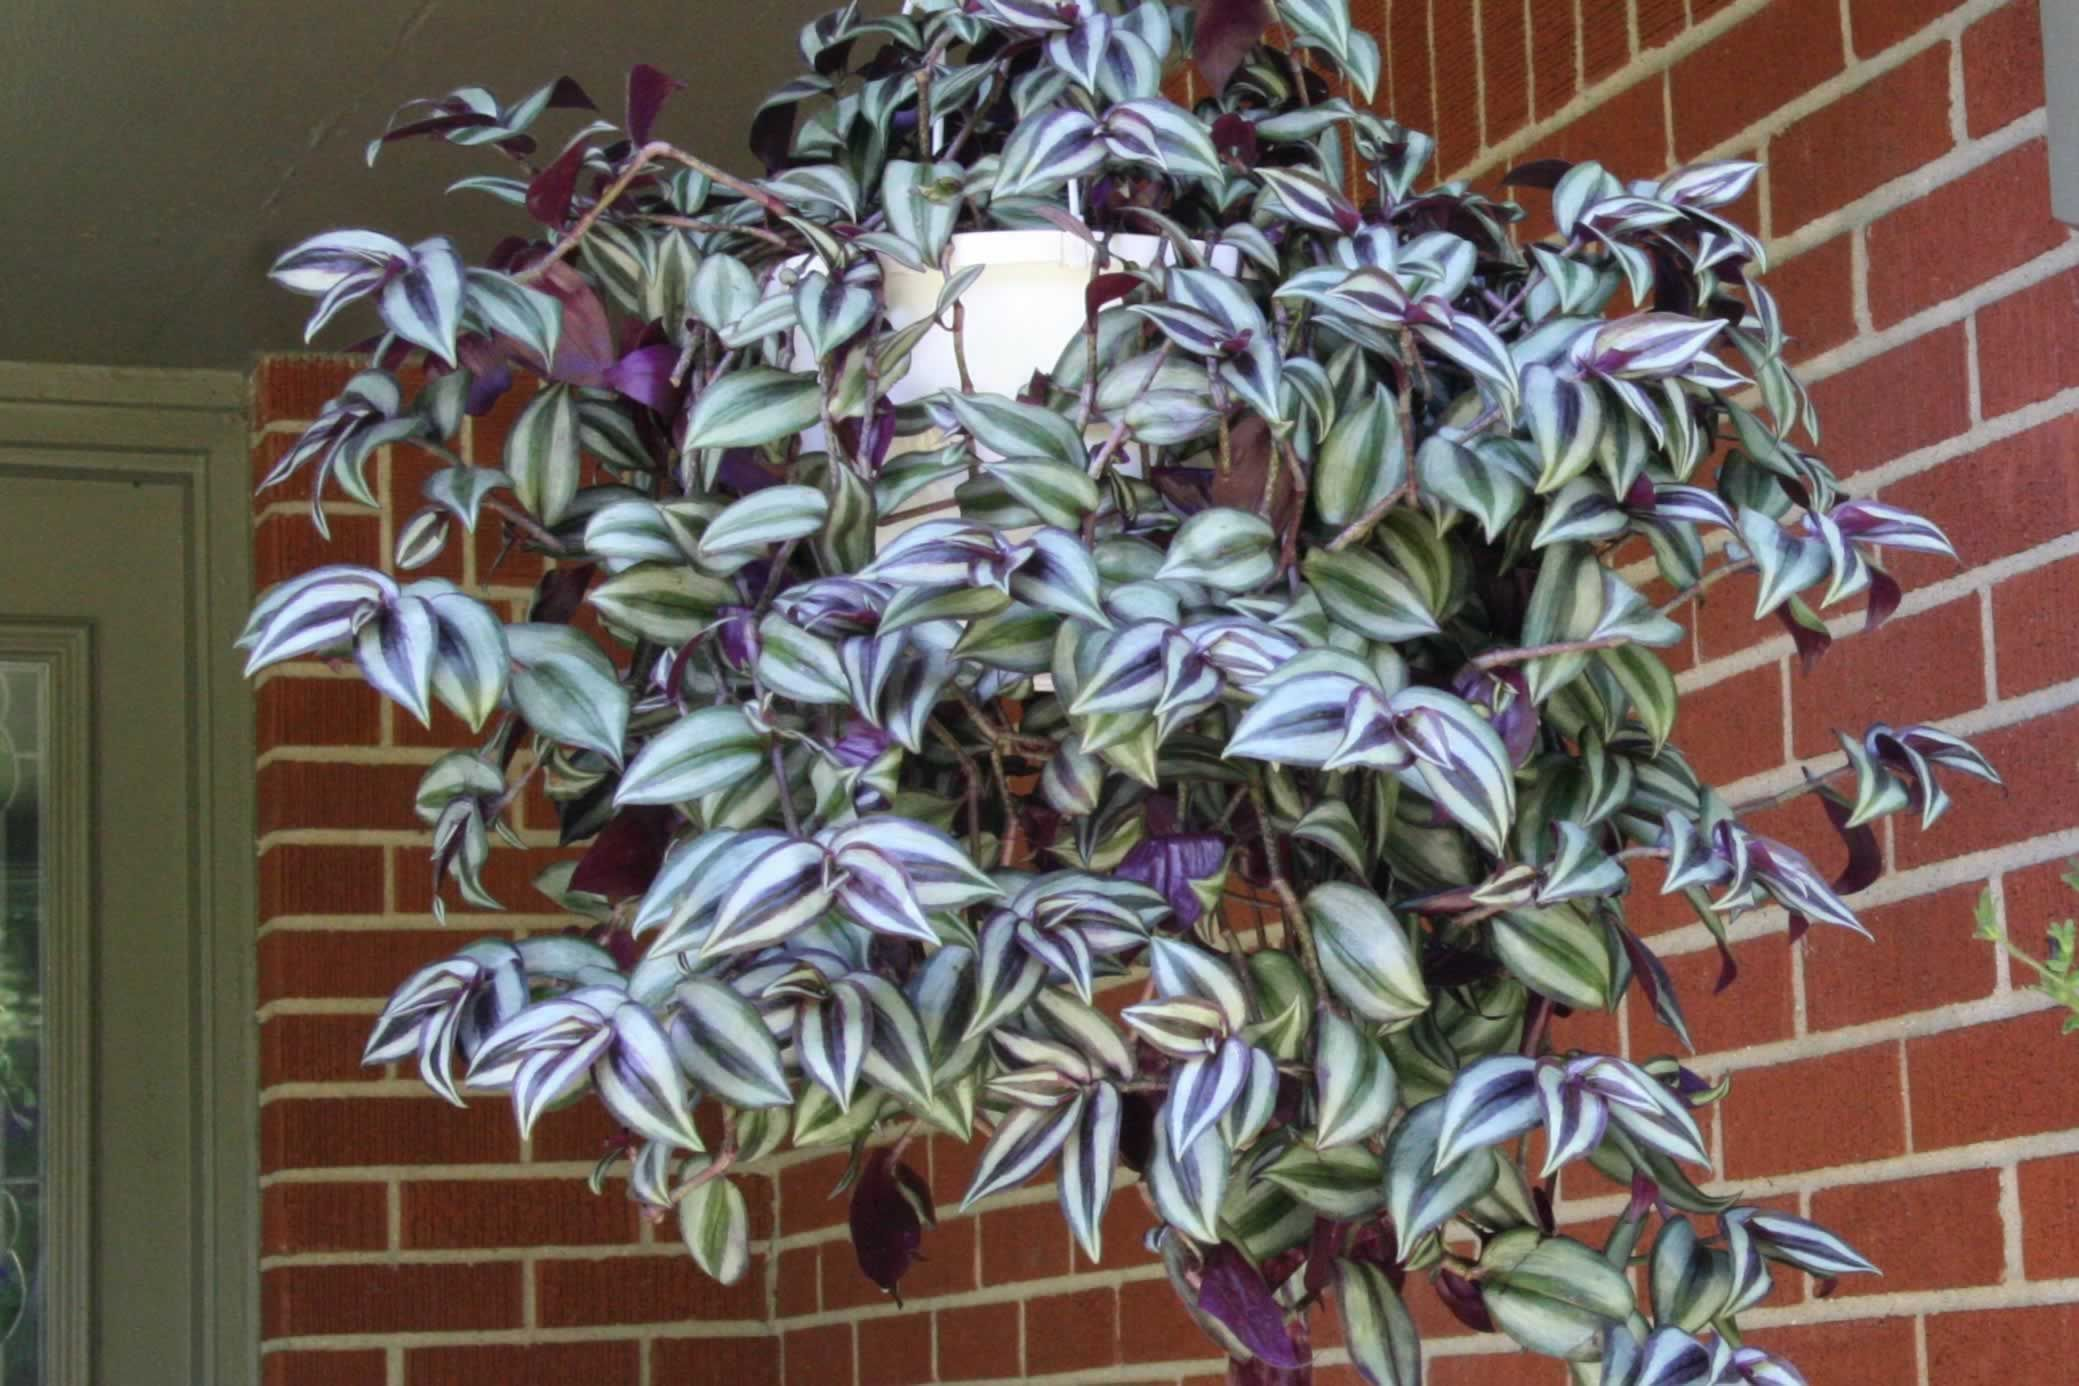 Tradescantia Zebrina U0027Wandering Jewu0027   This Plant Grows Well Indoors Or  Out, And